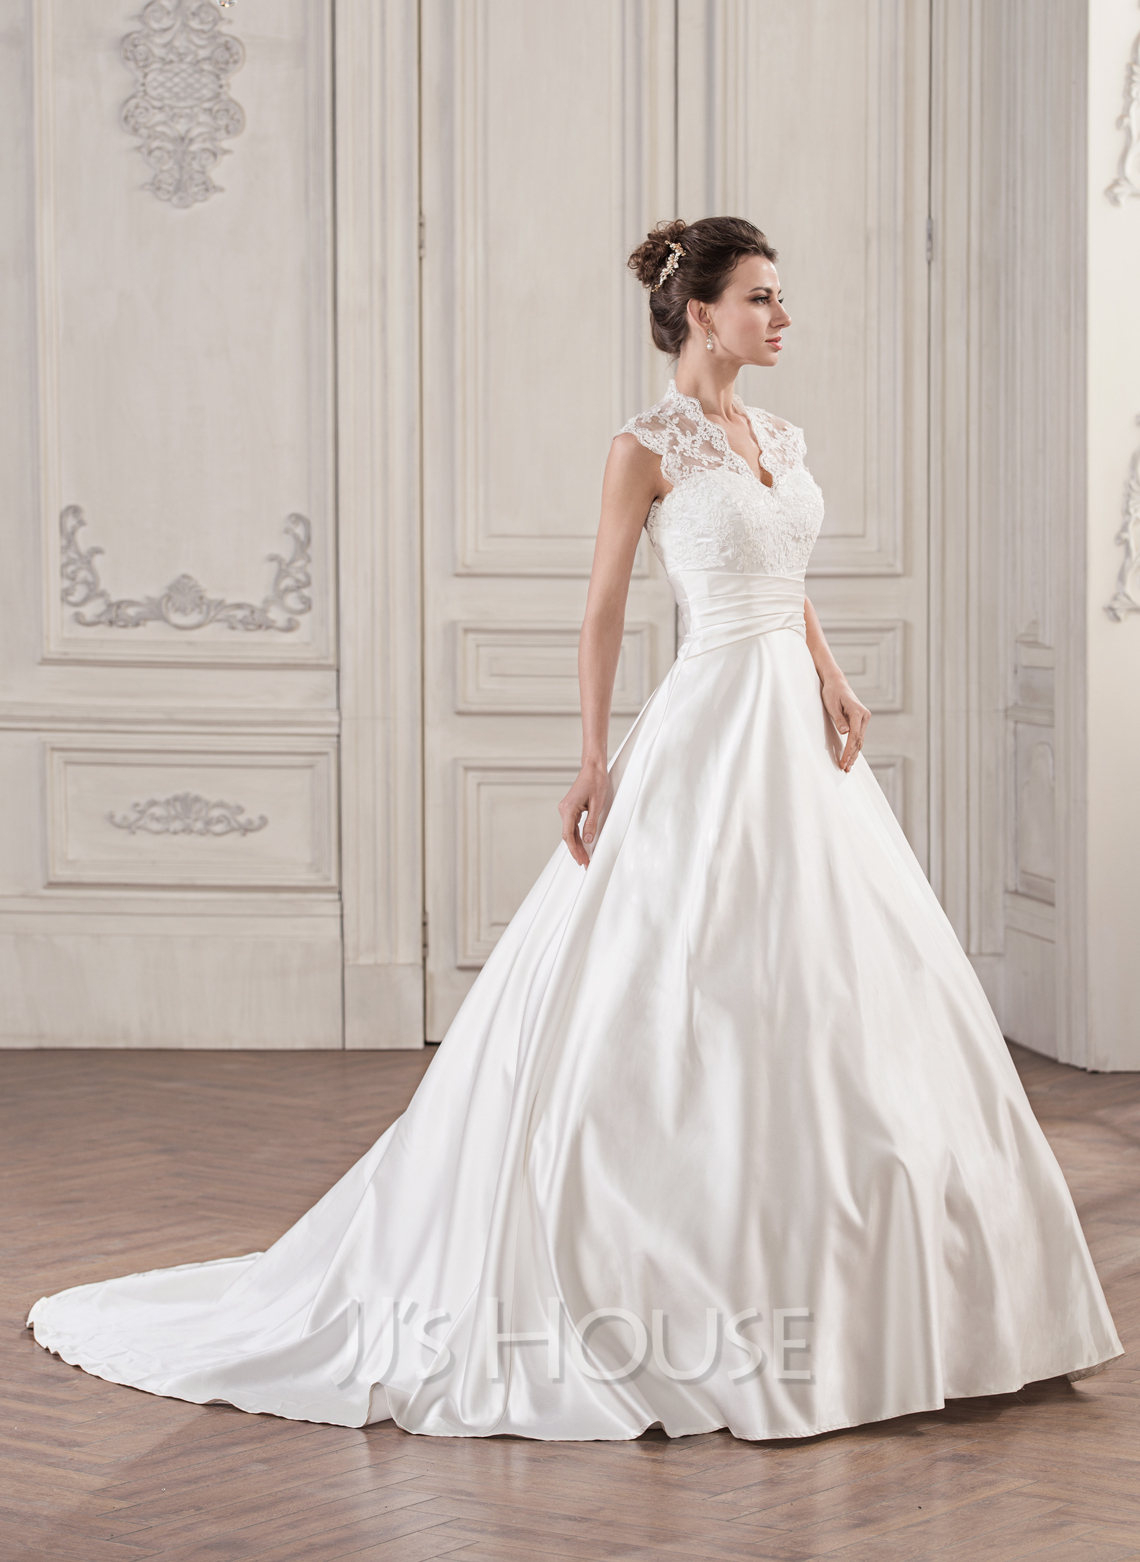 Ball Gown V Neck Court Train Satin Lace Wedding Dress With Ruffle g jjs house wedding dresses Home Wedding Dresses Loading zoom